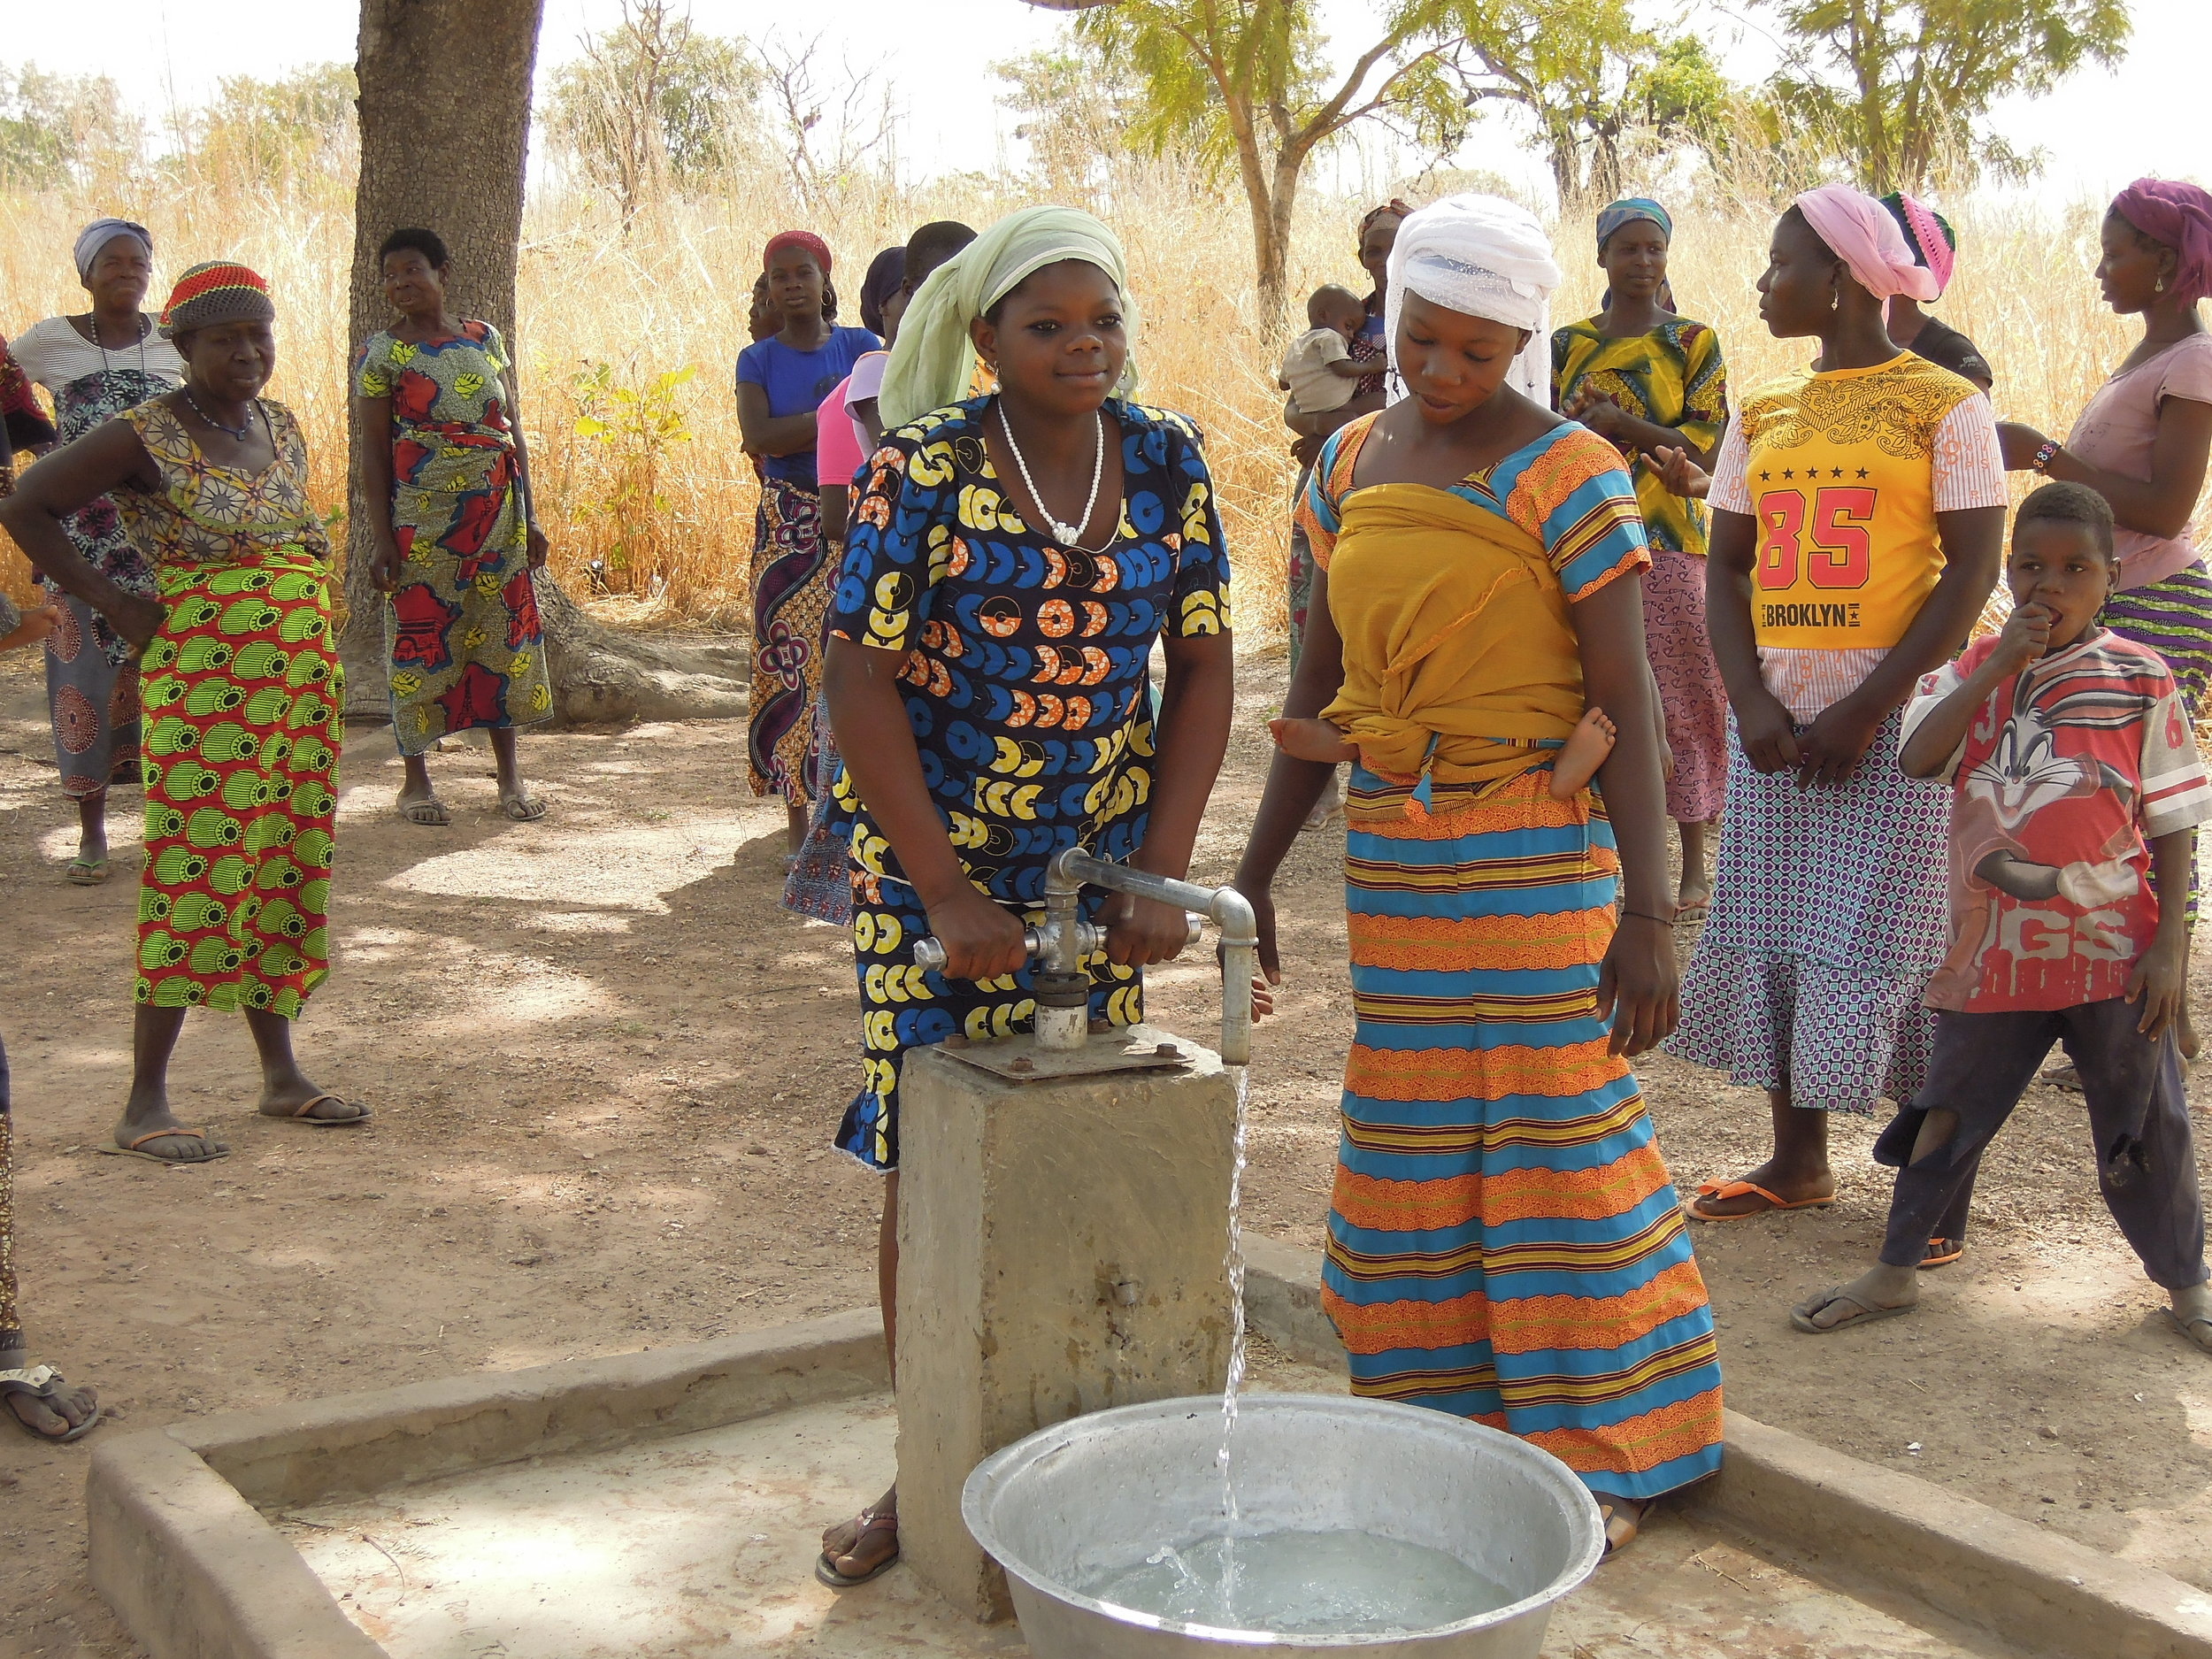 The women enjoyed posing for pictures at the new well. Because a new well eliminates the many hours spent every day going to fetch water from distant sources, girls are able to begin attending school as a result.